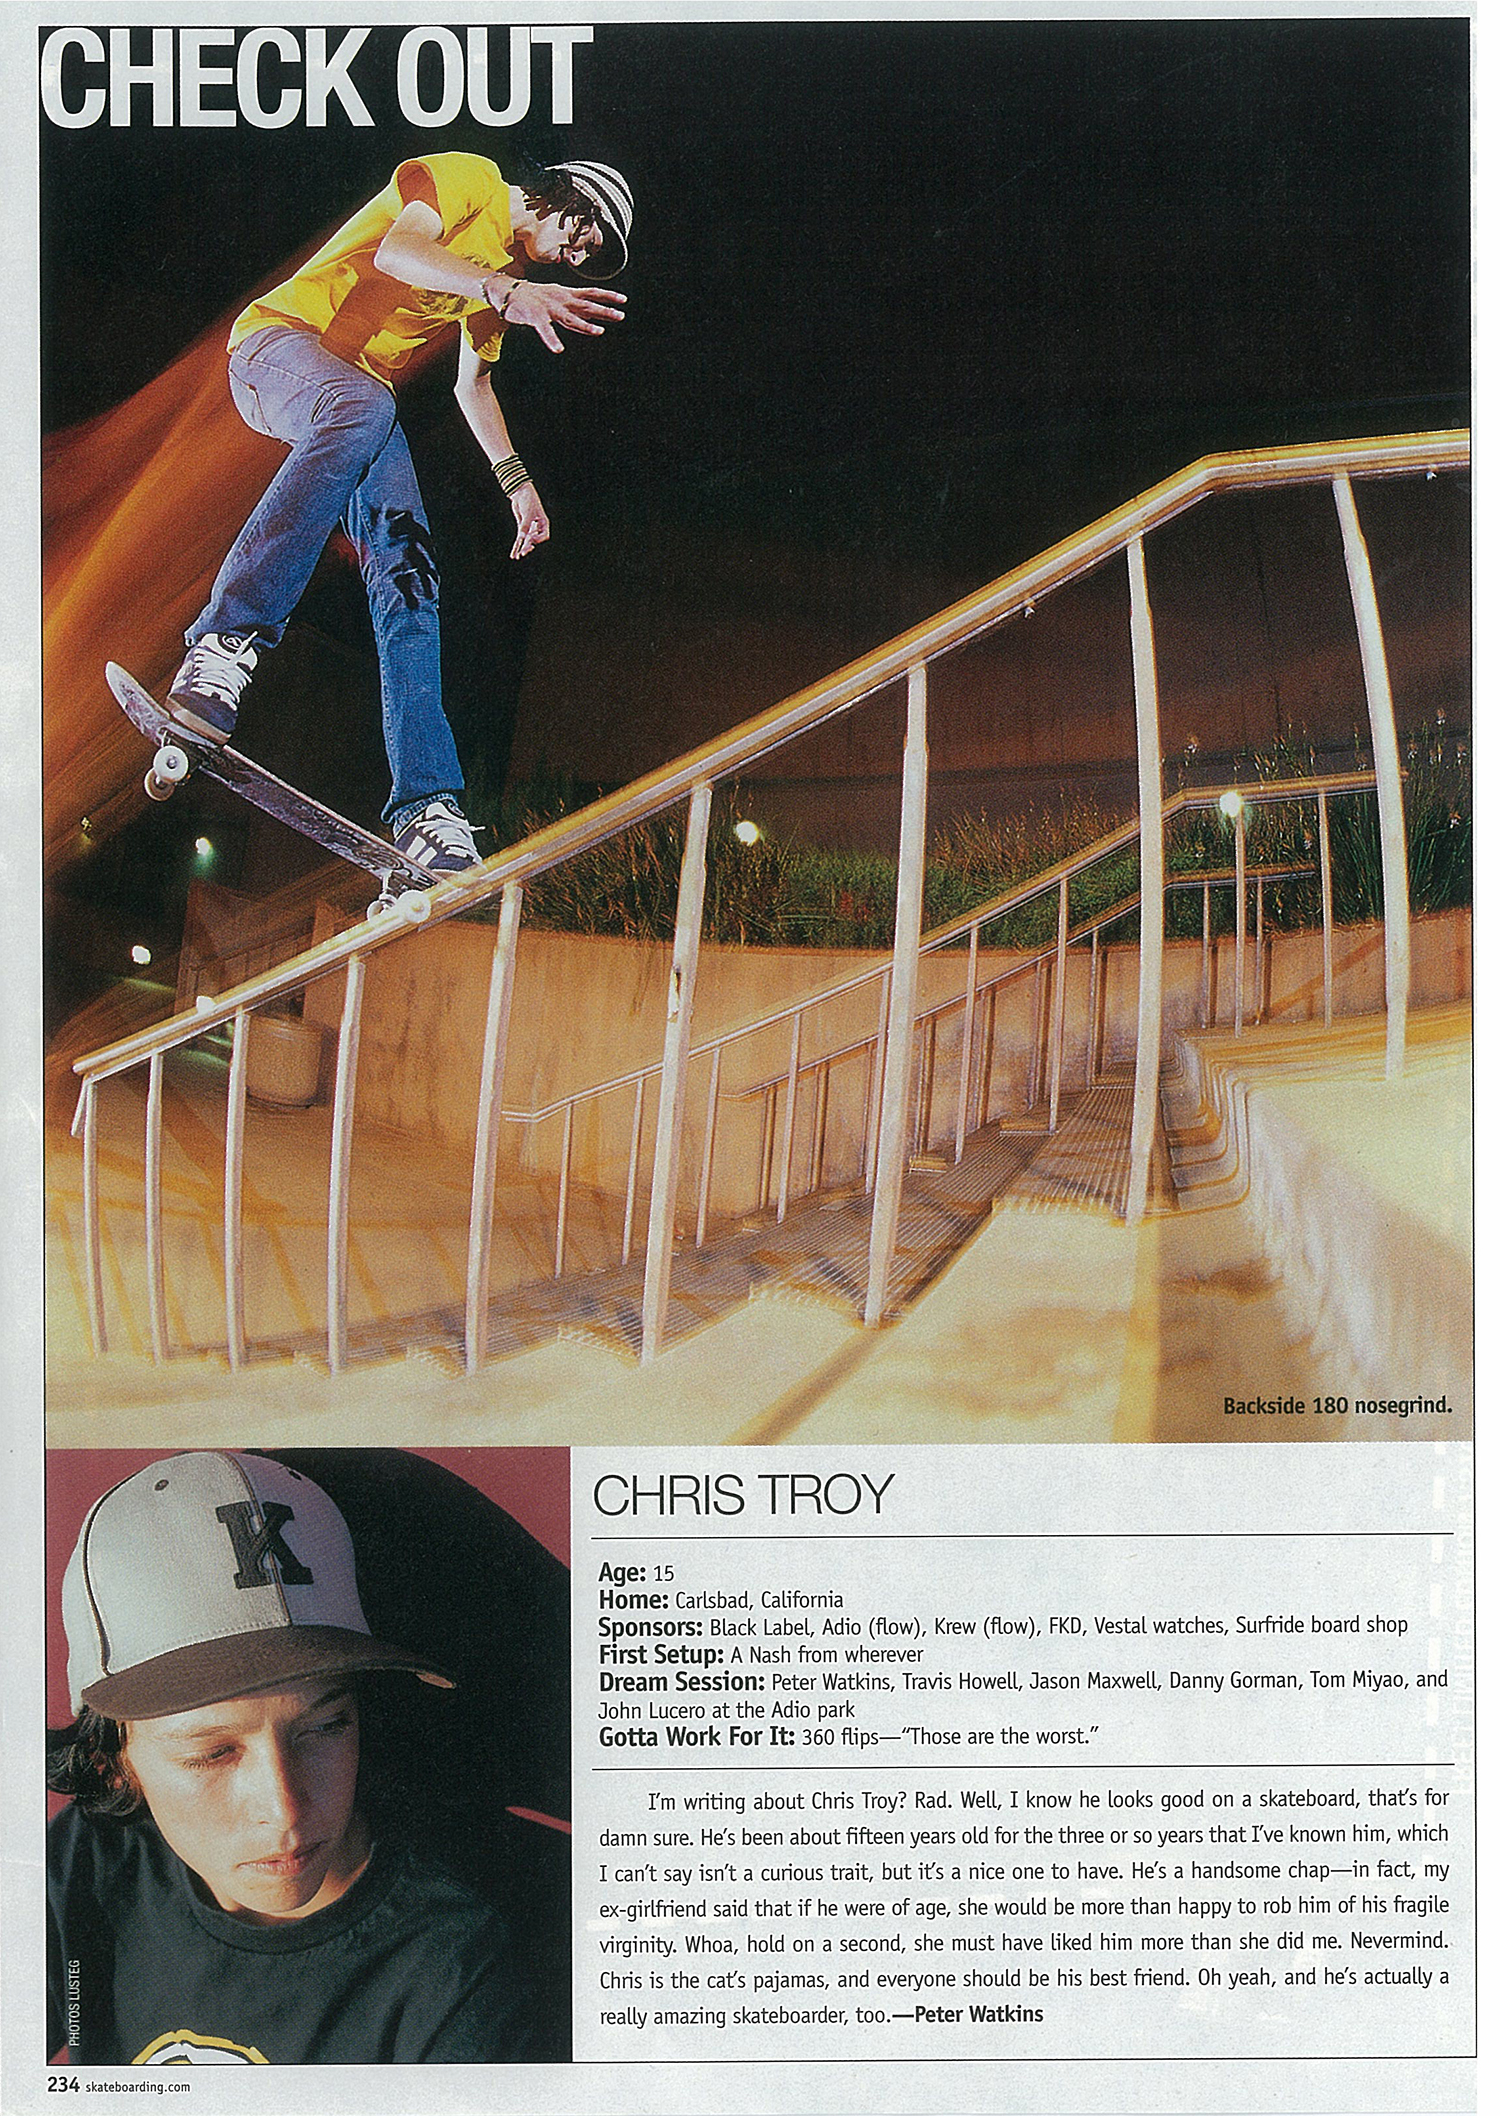 05_chris_troy_tws_check_out.jpg